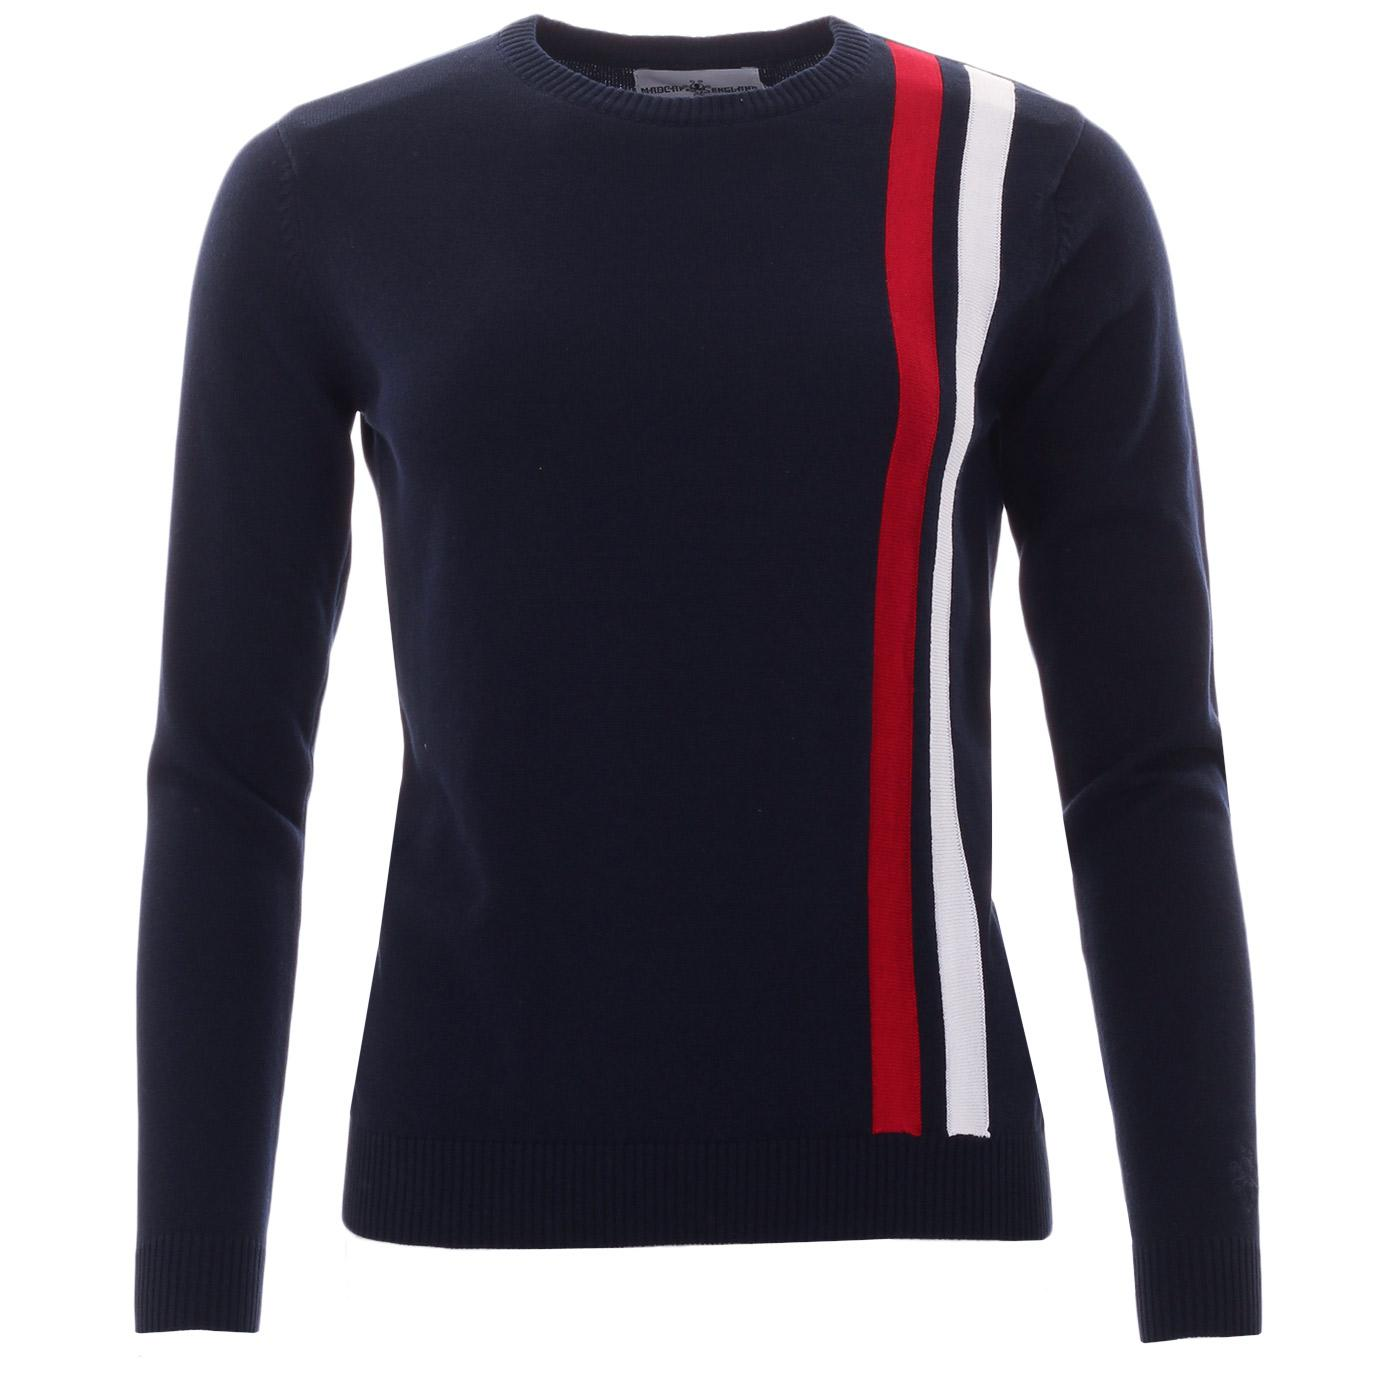 Madcap England Action Women's Mod Racing Jumper in Navy